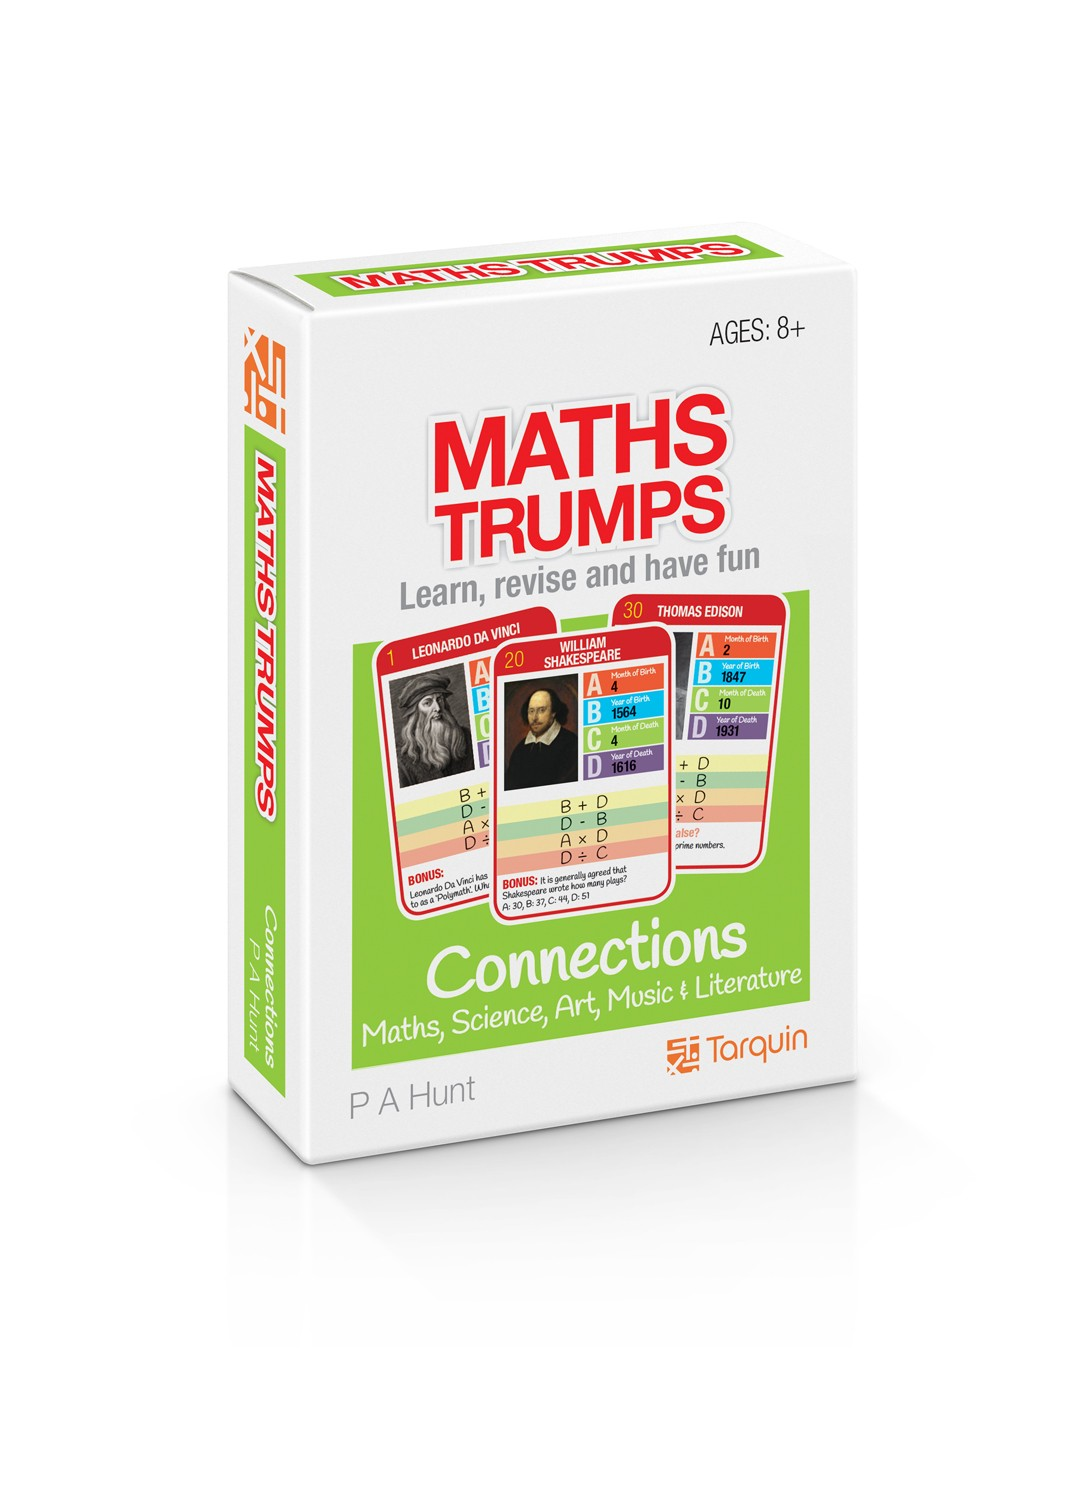 Maths Trumps - Connections